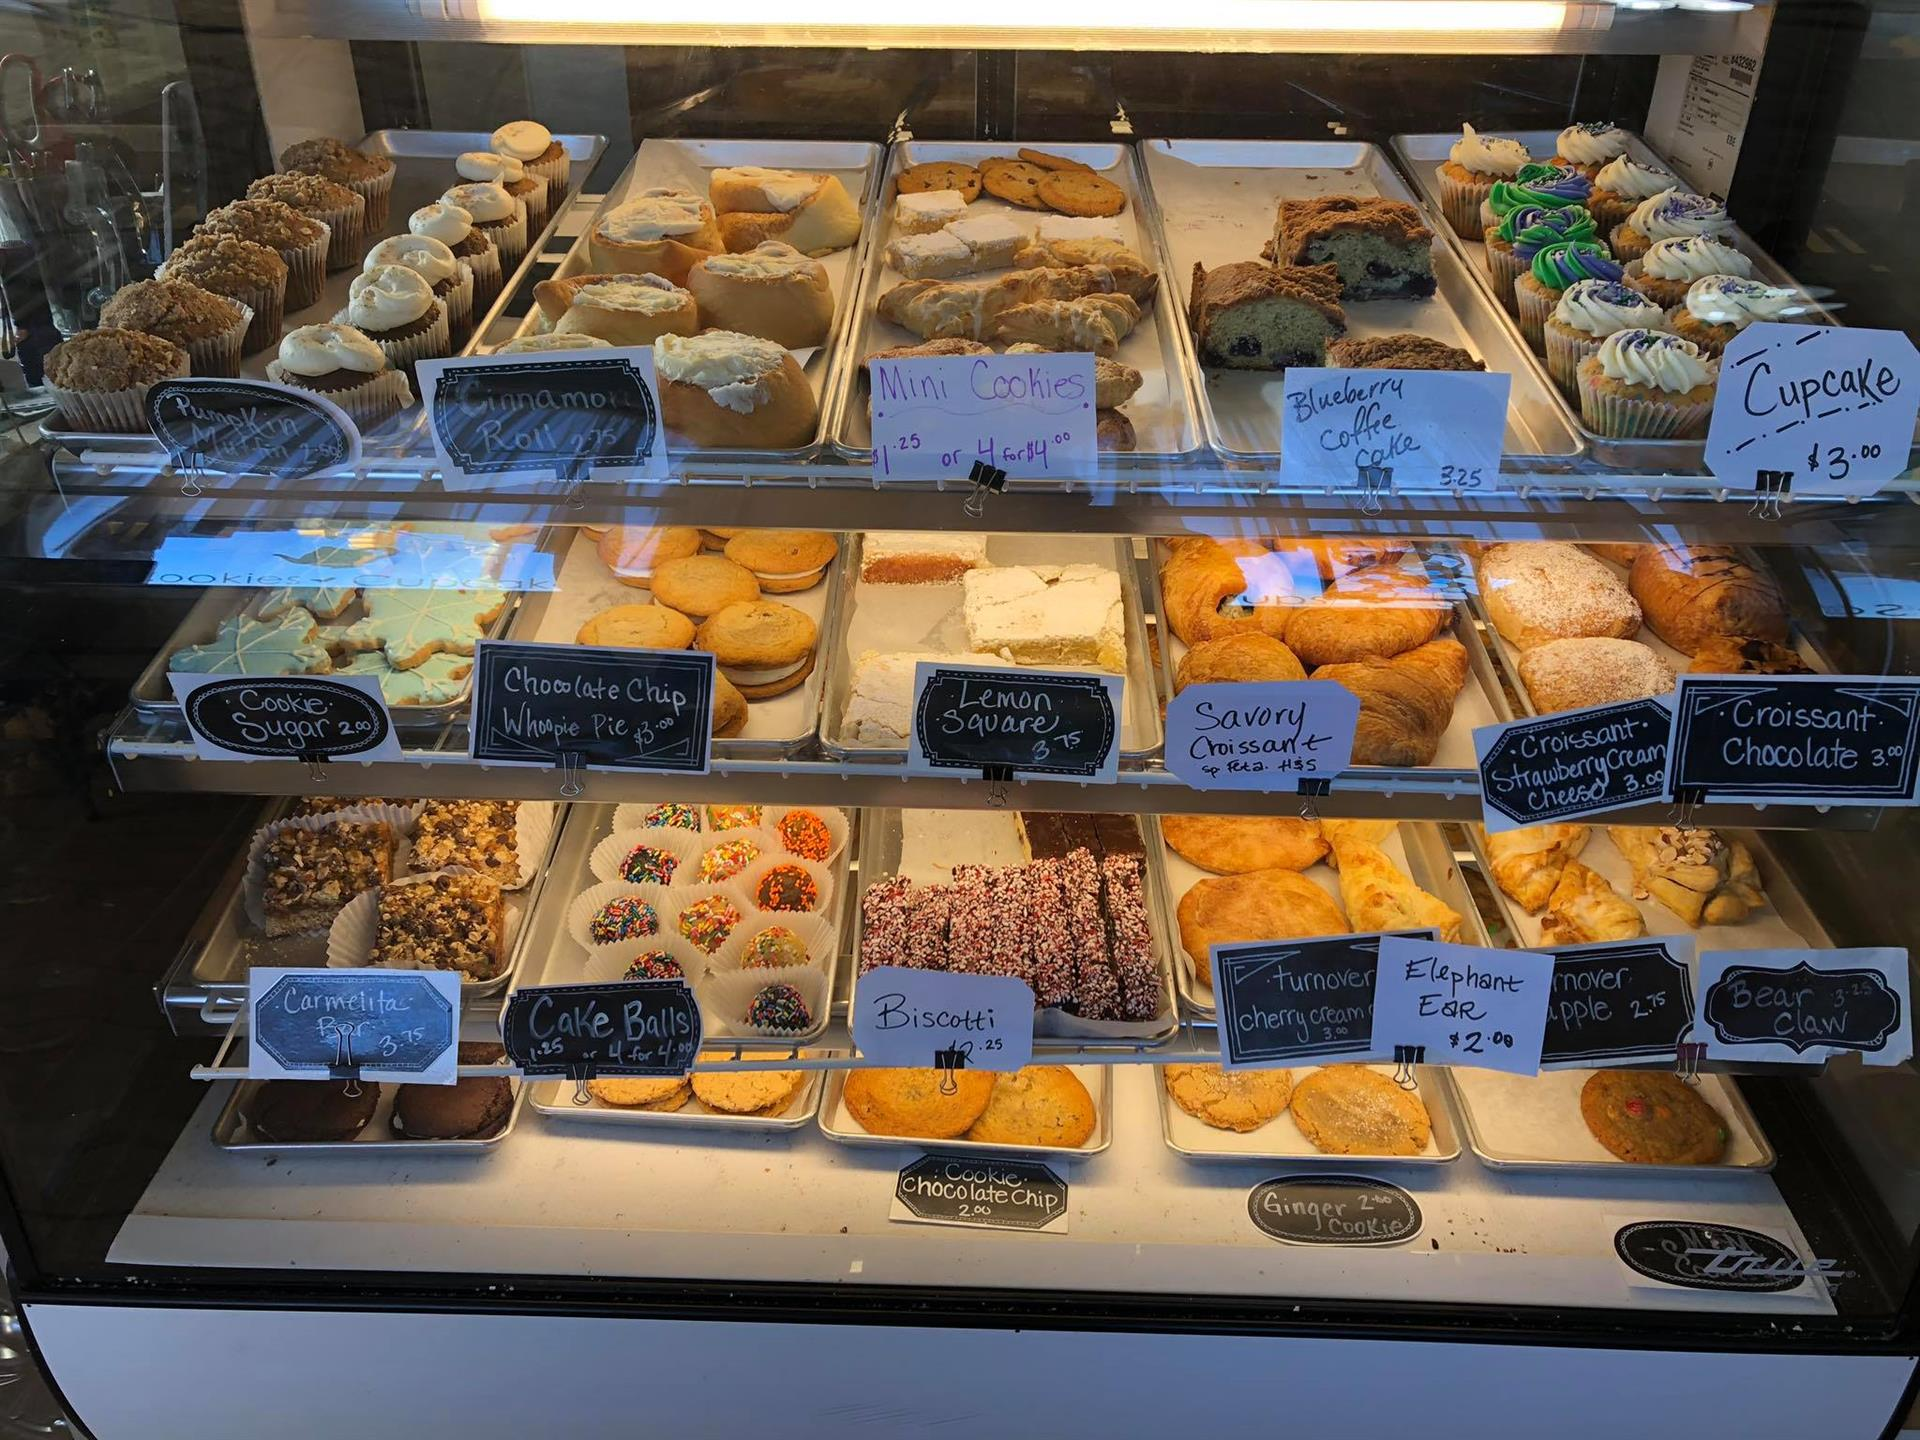 display of assorted cakes and pastries